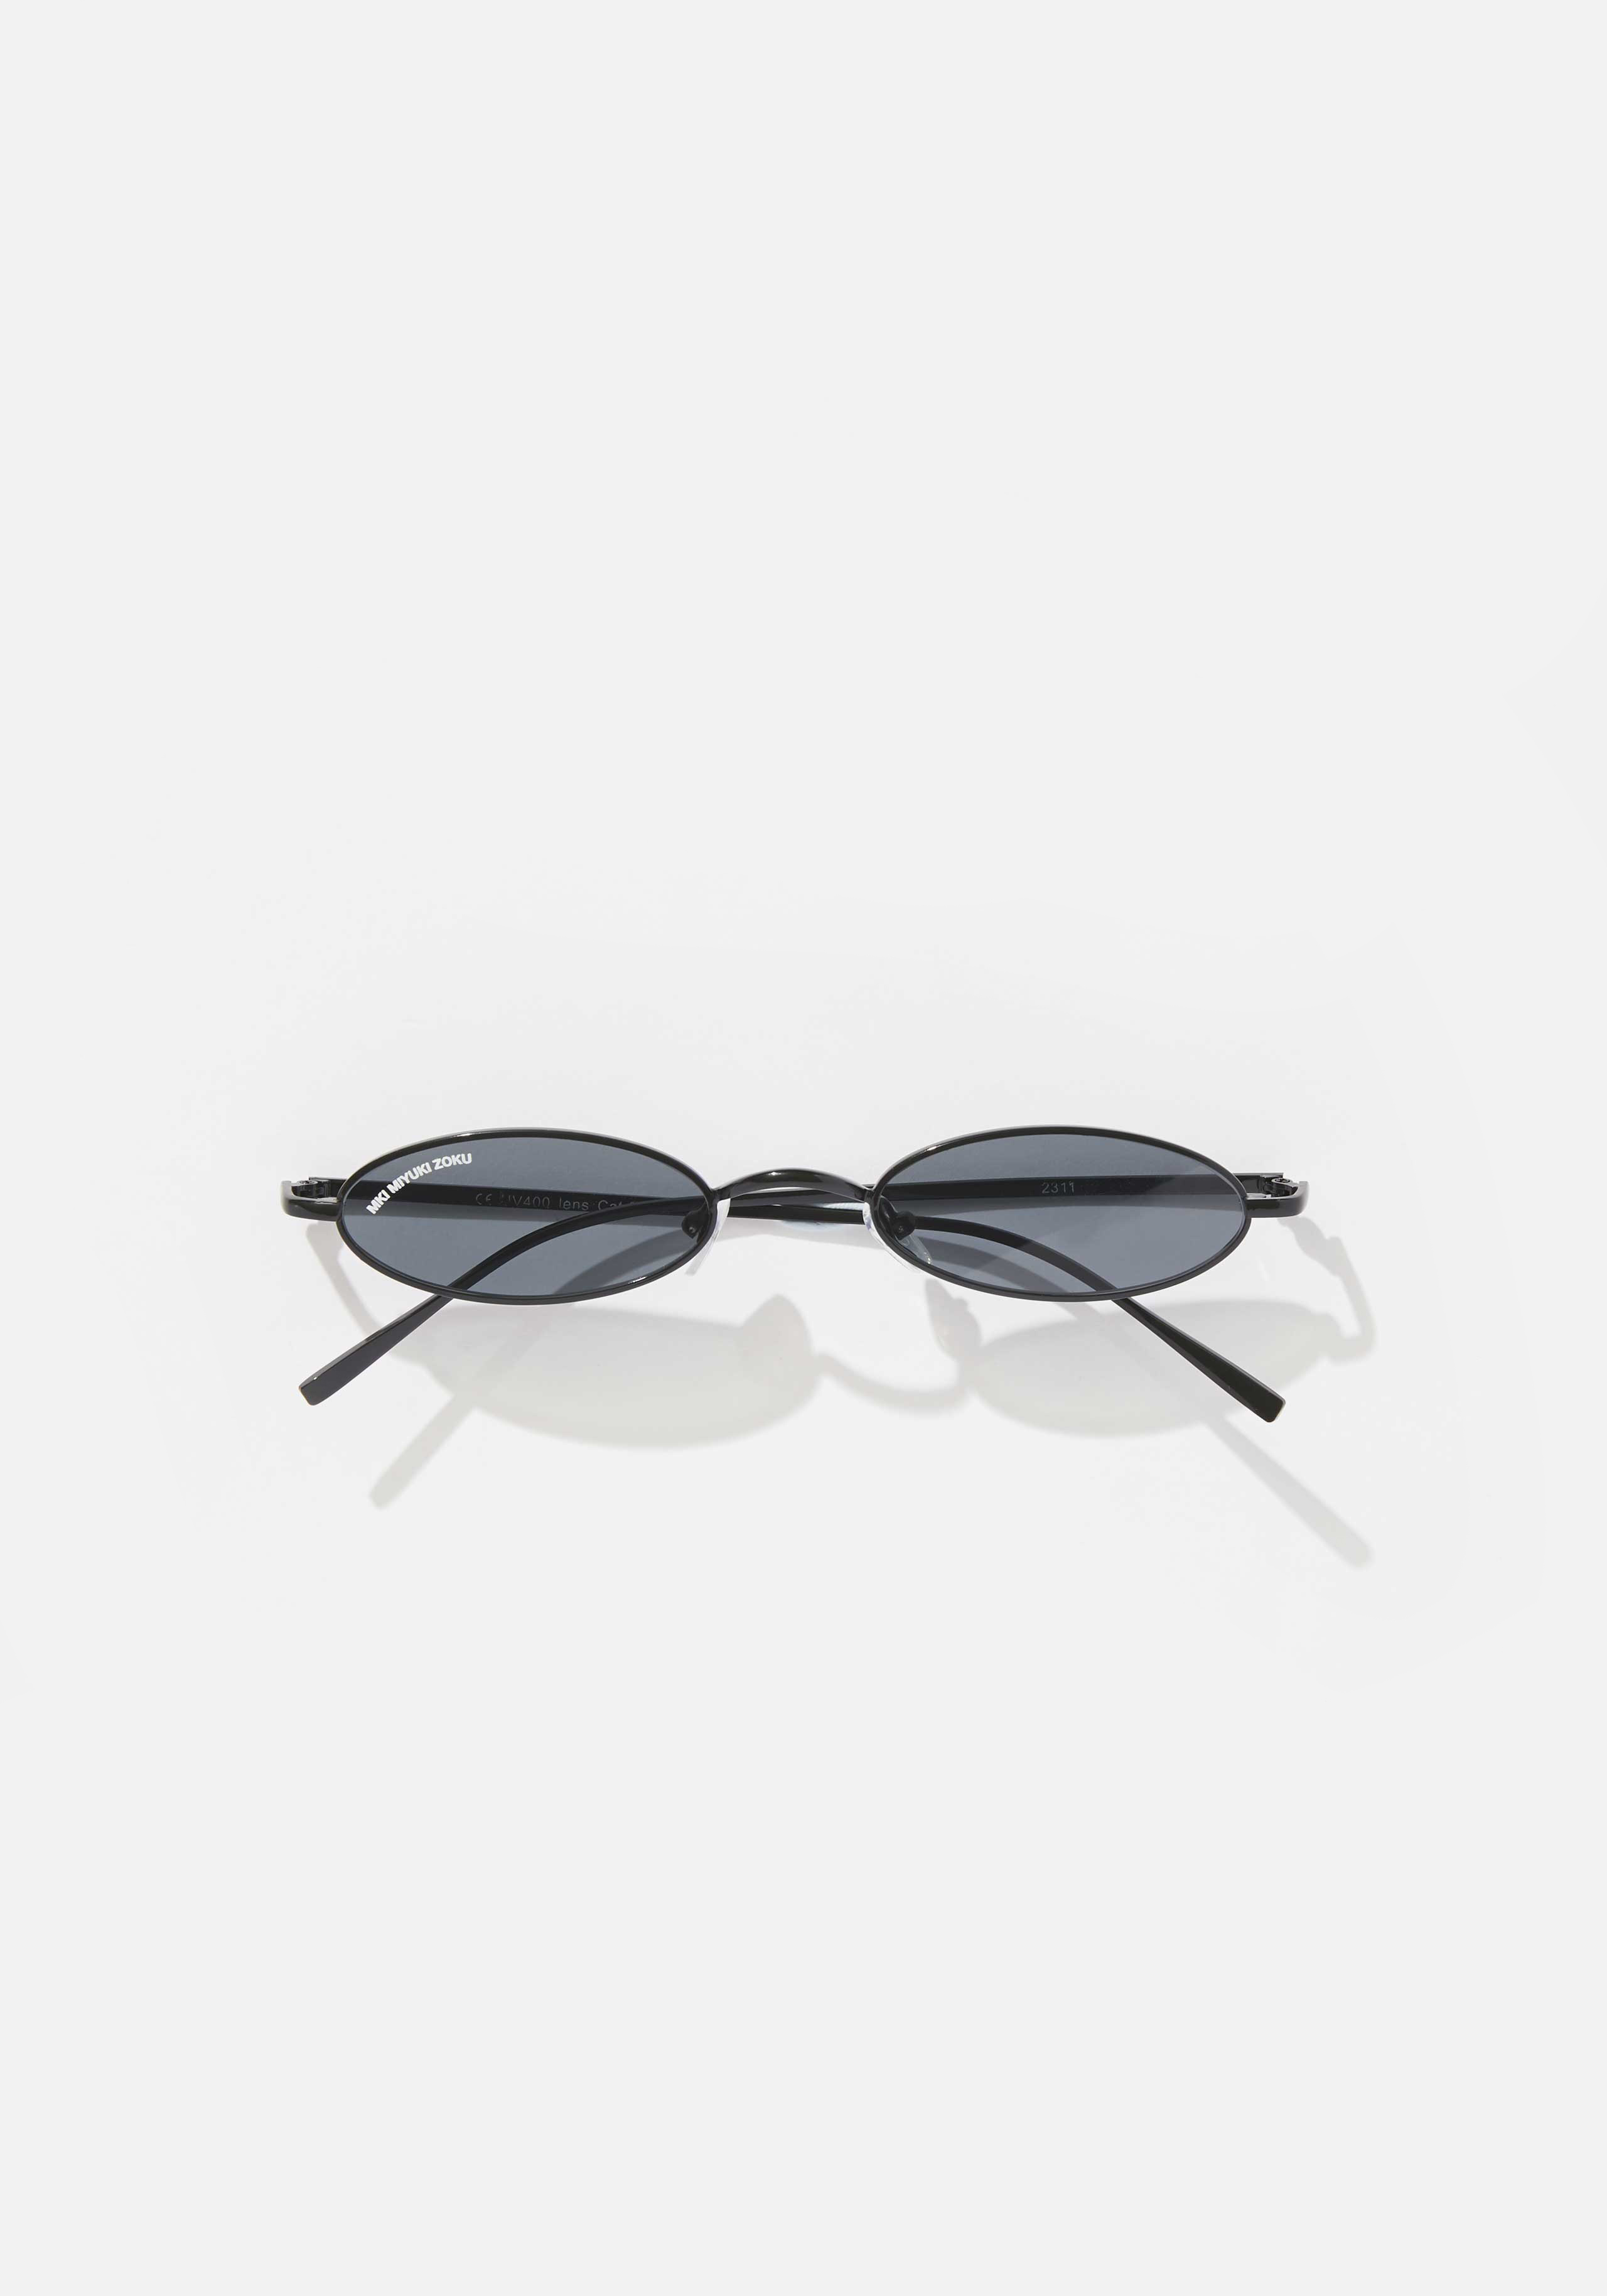 mki metal oval sunglasses 1